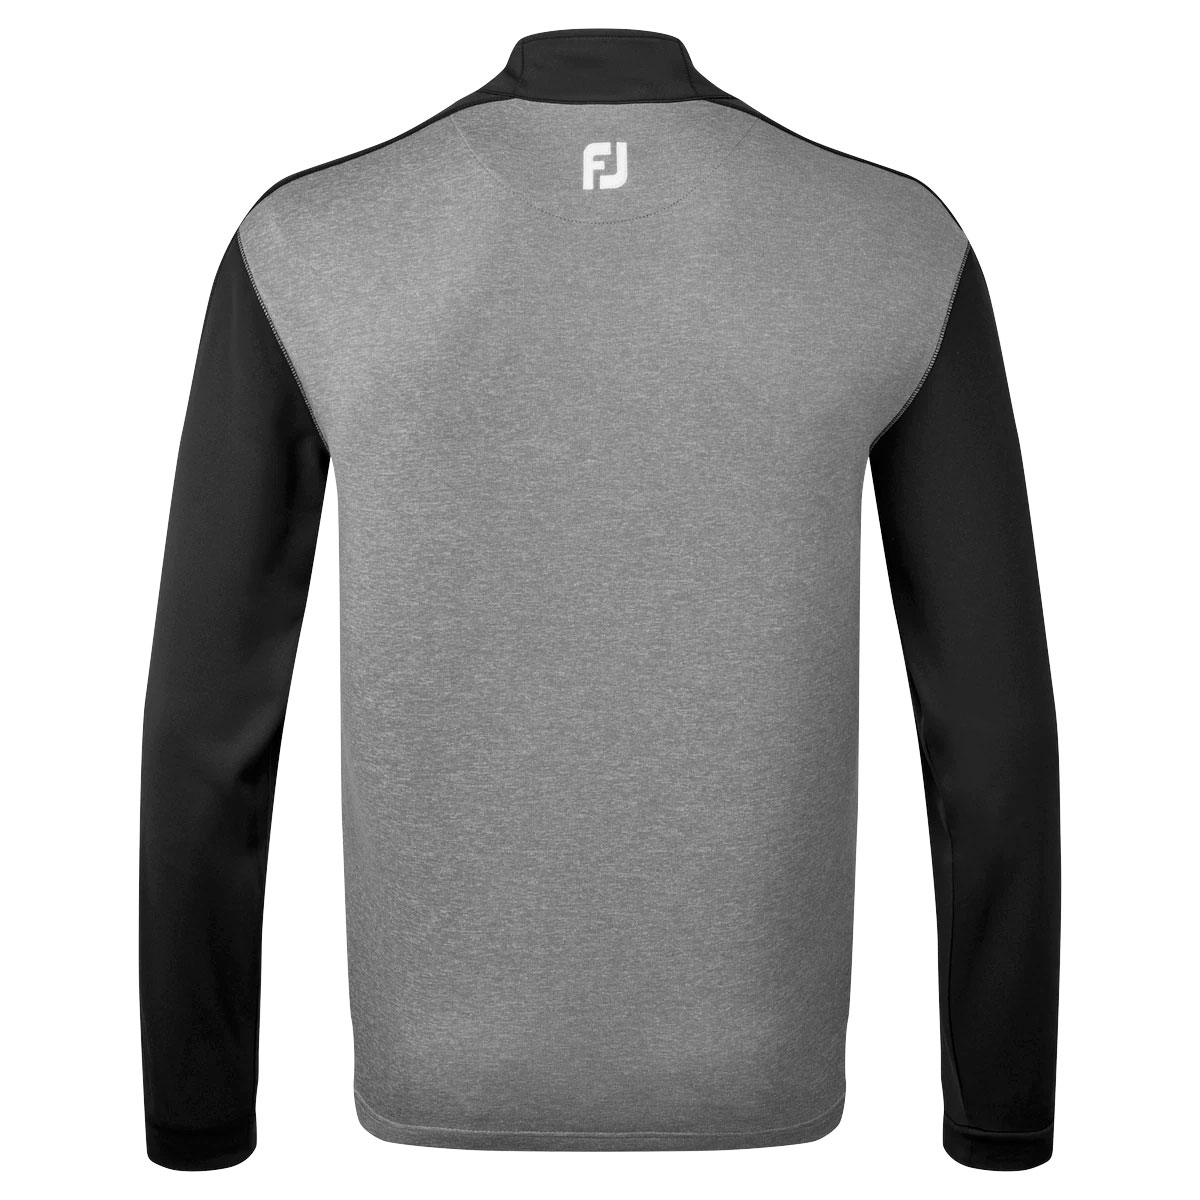 FootJoy Heather Colour Block Chill-Out Mens Golf Pullover  - Black/Heather Coal